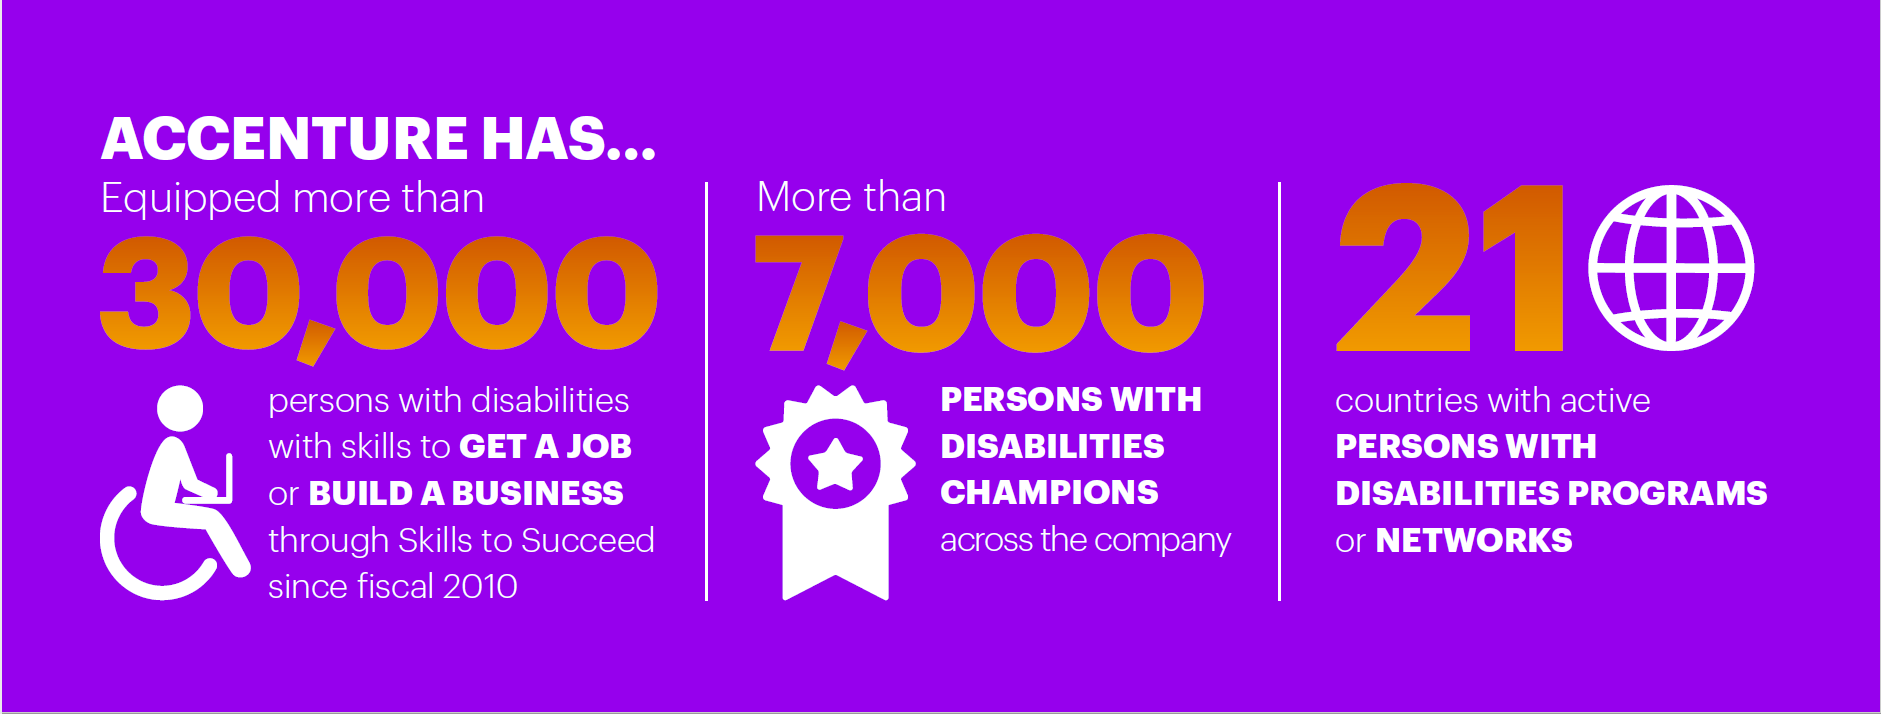 Click here to download the infographic. Accenture Has... This opens a new window.